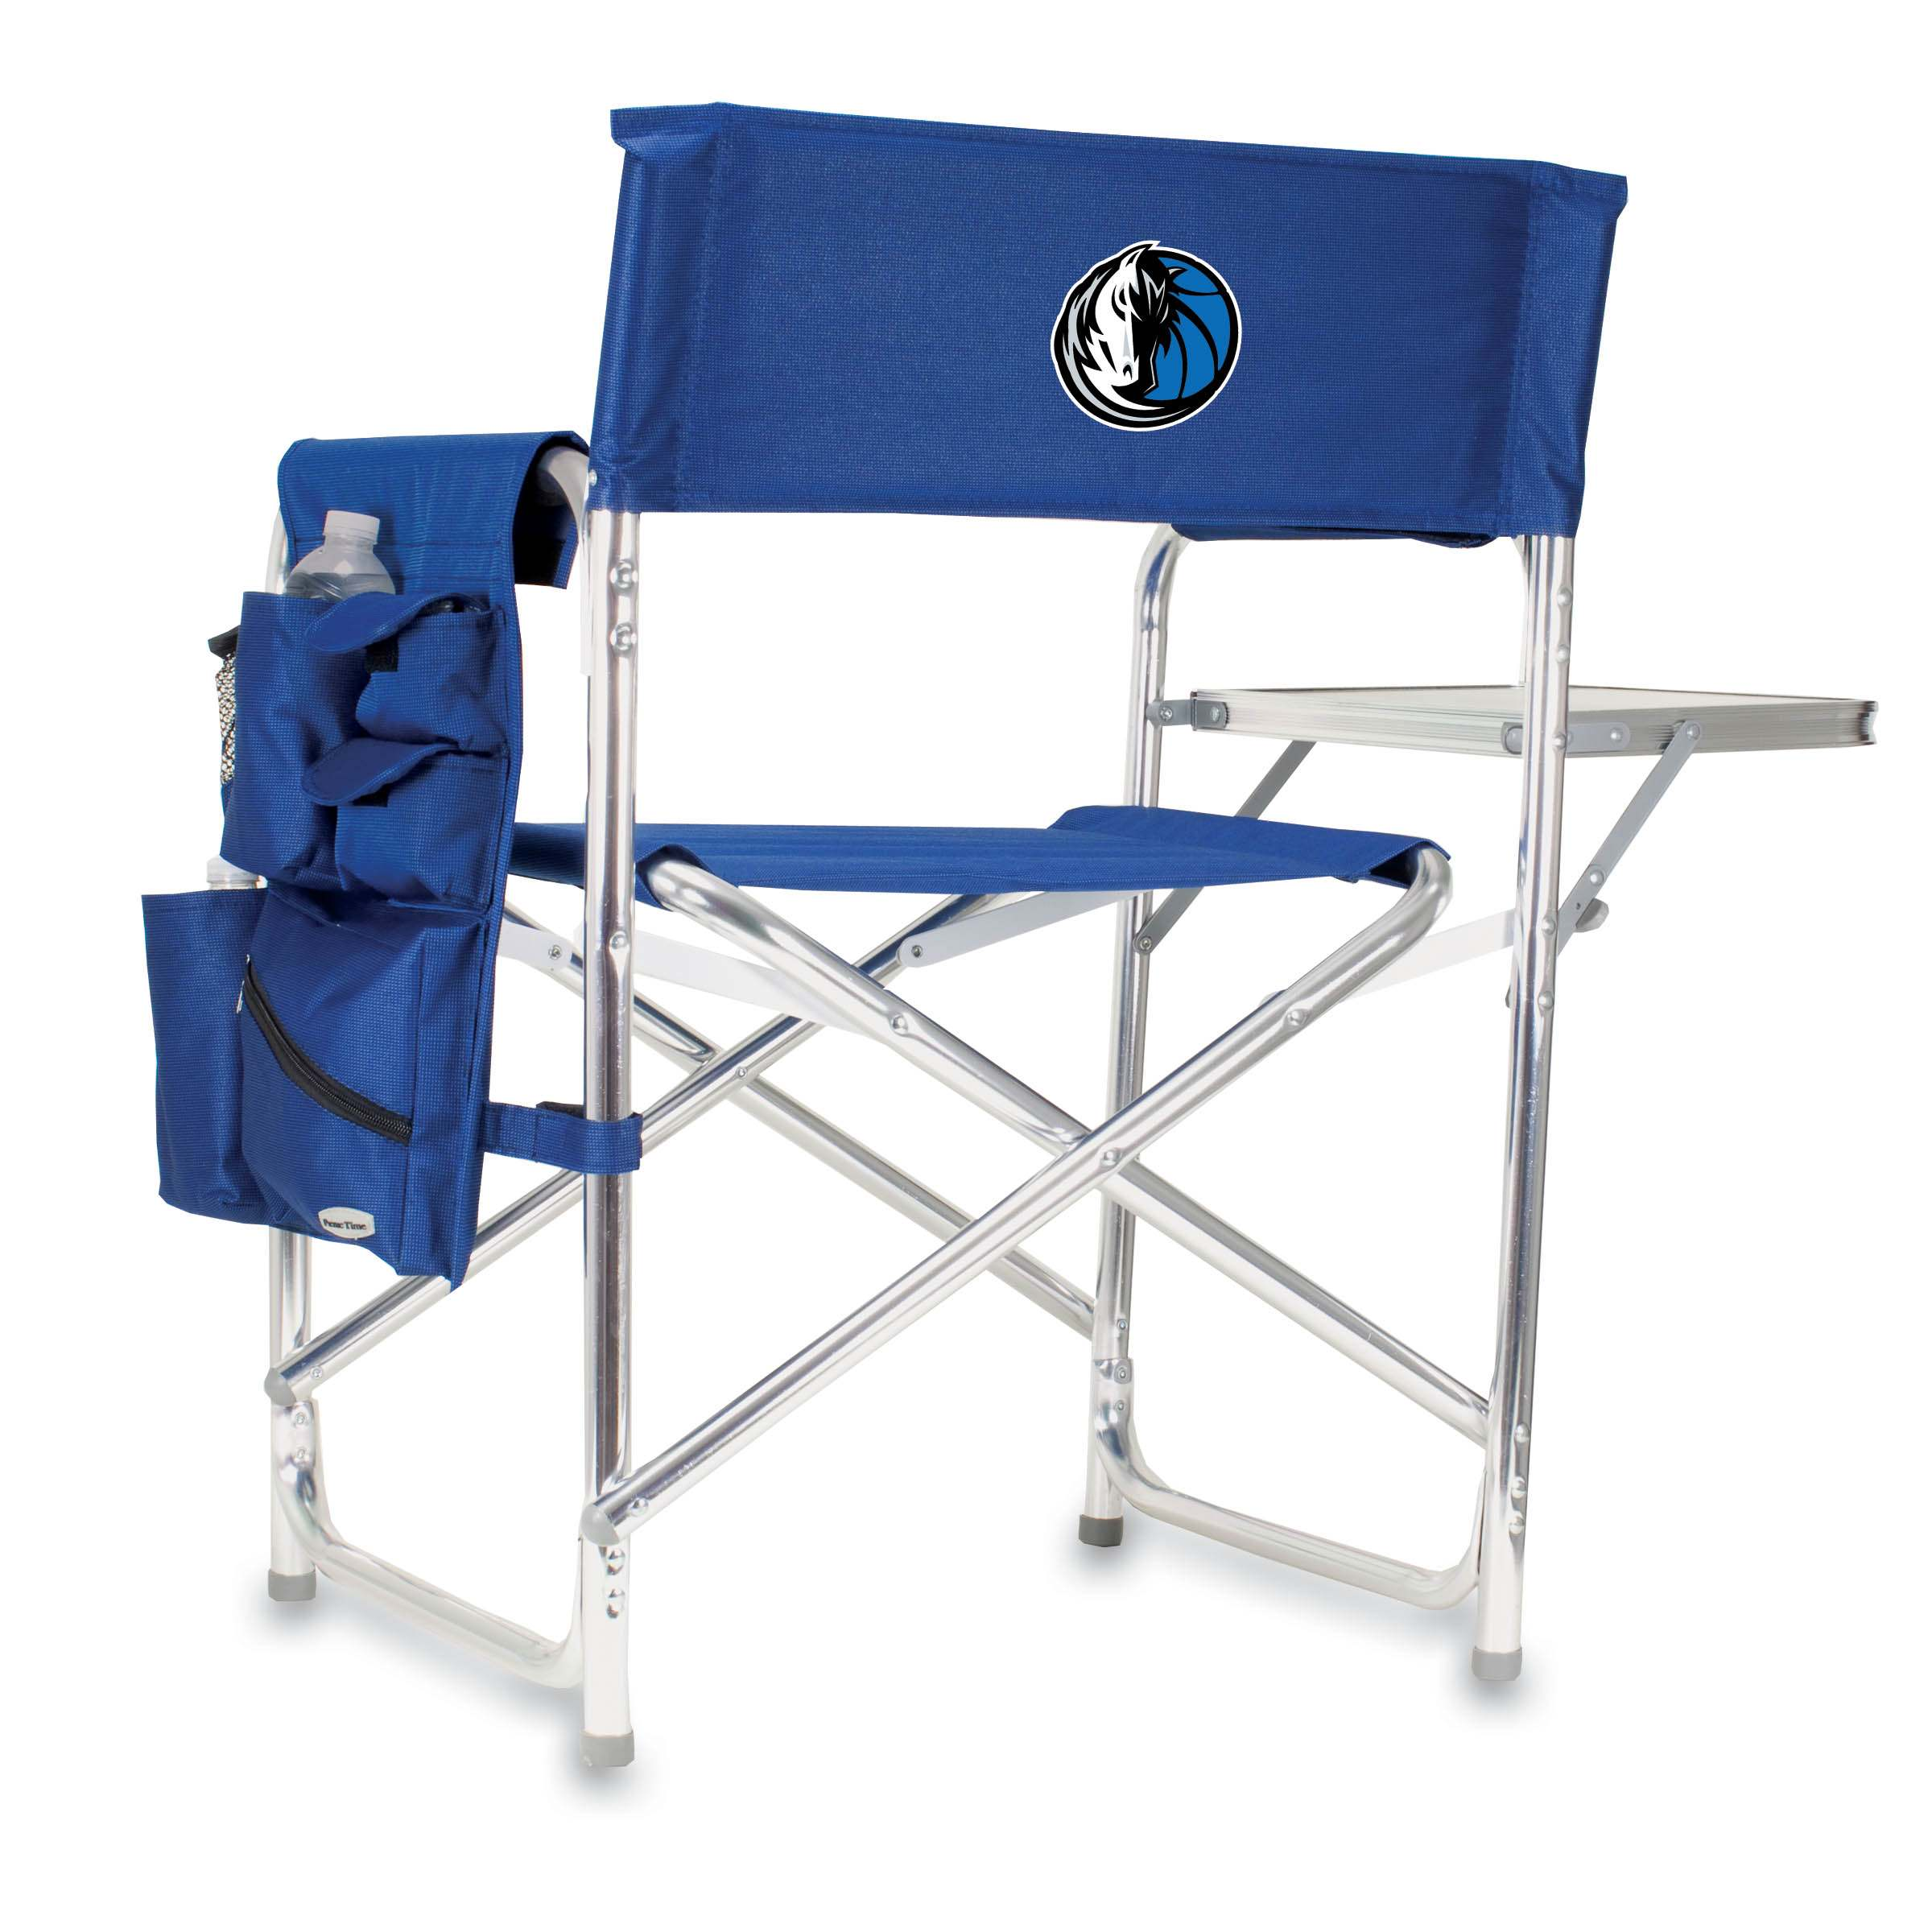 Picnic Time Nba Sports Chair Dallas Mavericks